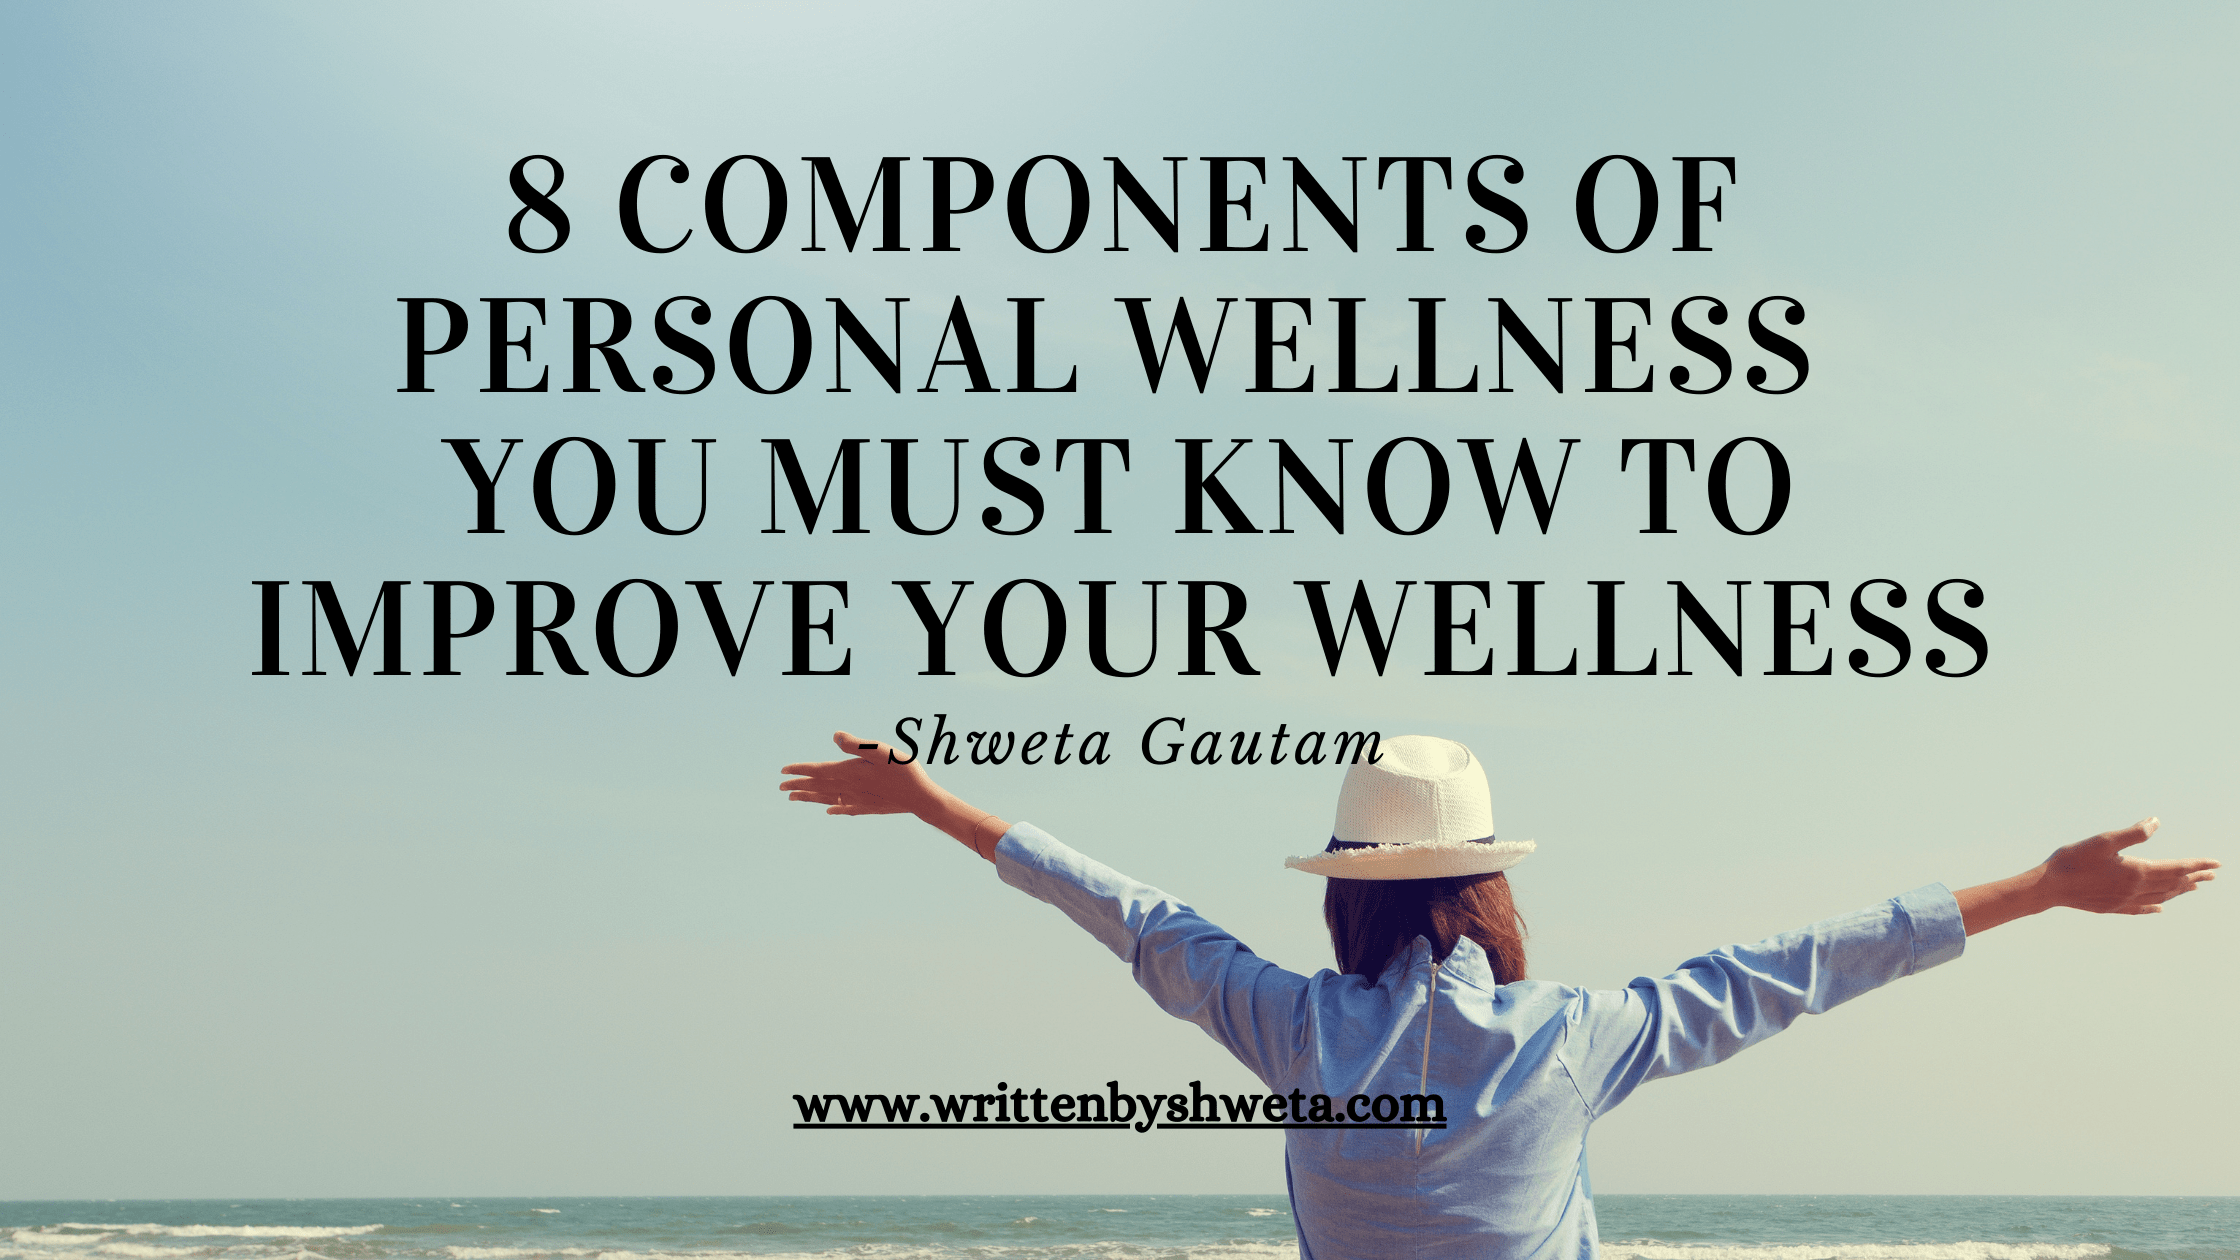 8 COMPONENTS OF PERSONAL WELLNESS YOU MUST KNOW TO IMPROVE YOUR WELLNESS